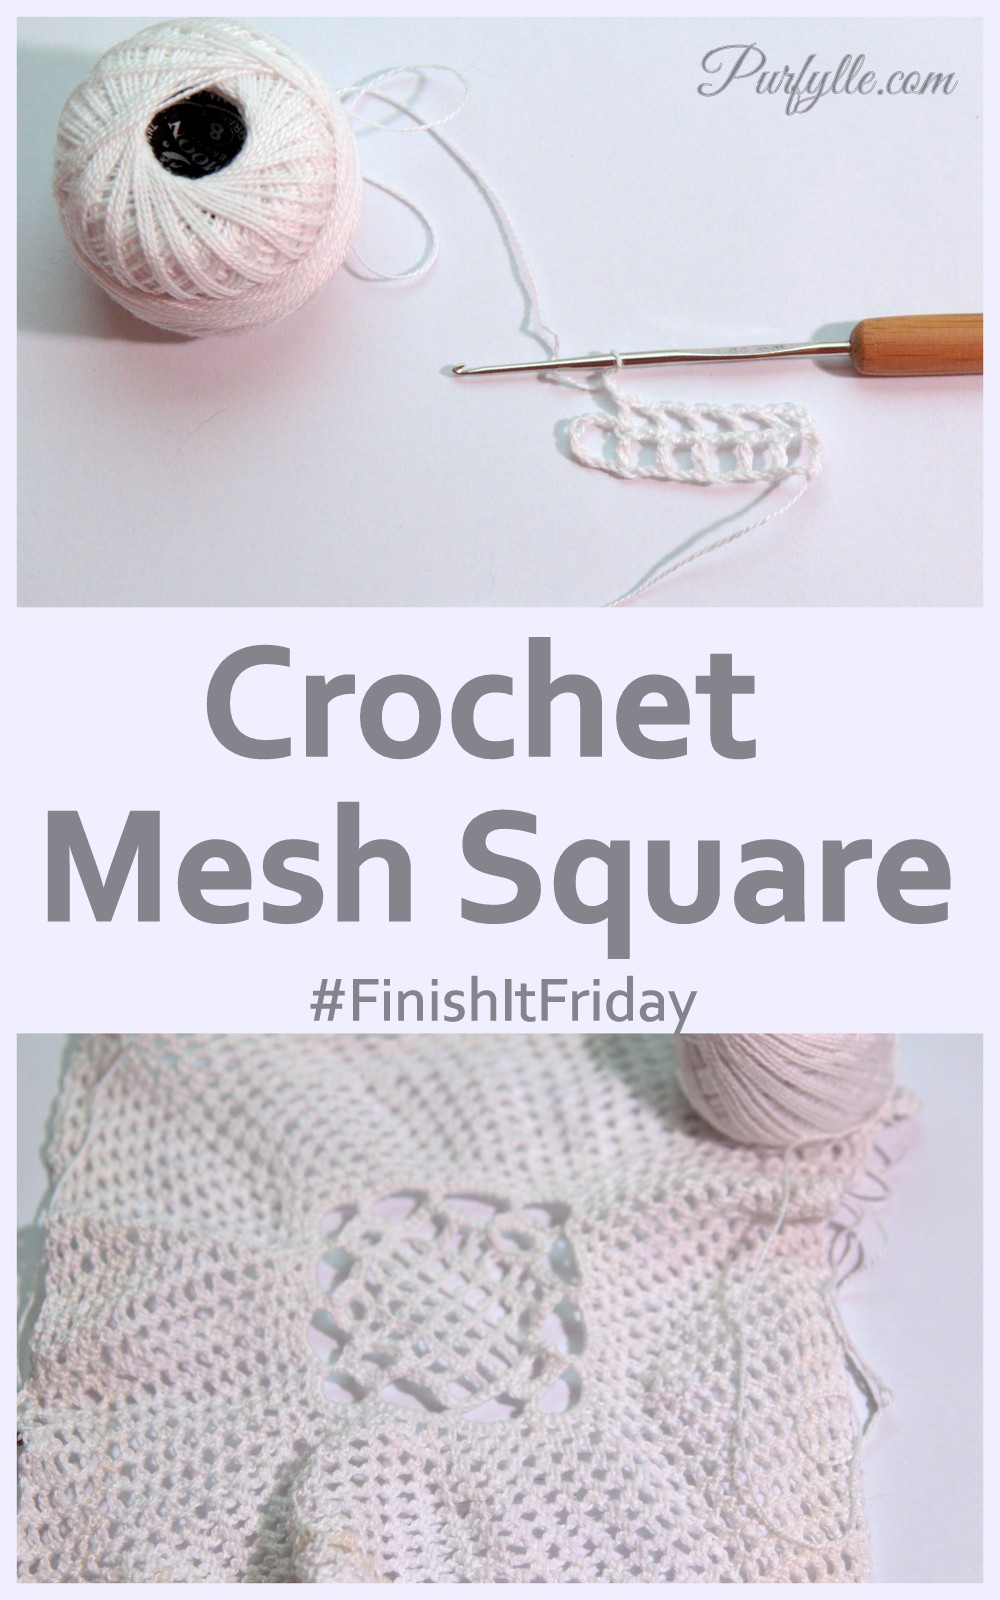 Crochet Mesh Square - #FinishItFriday